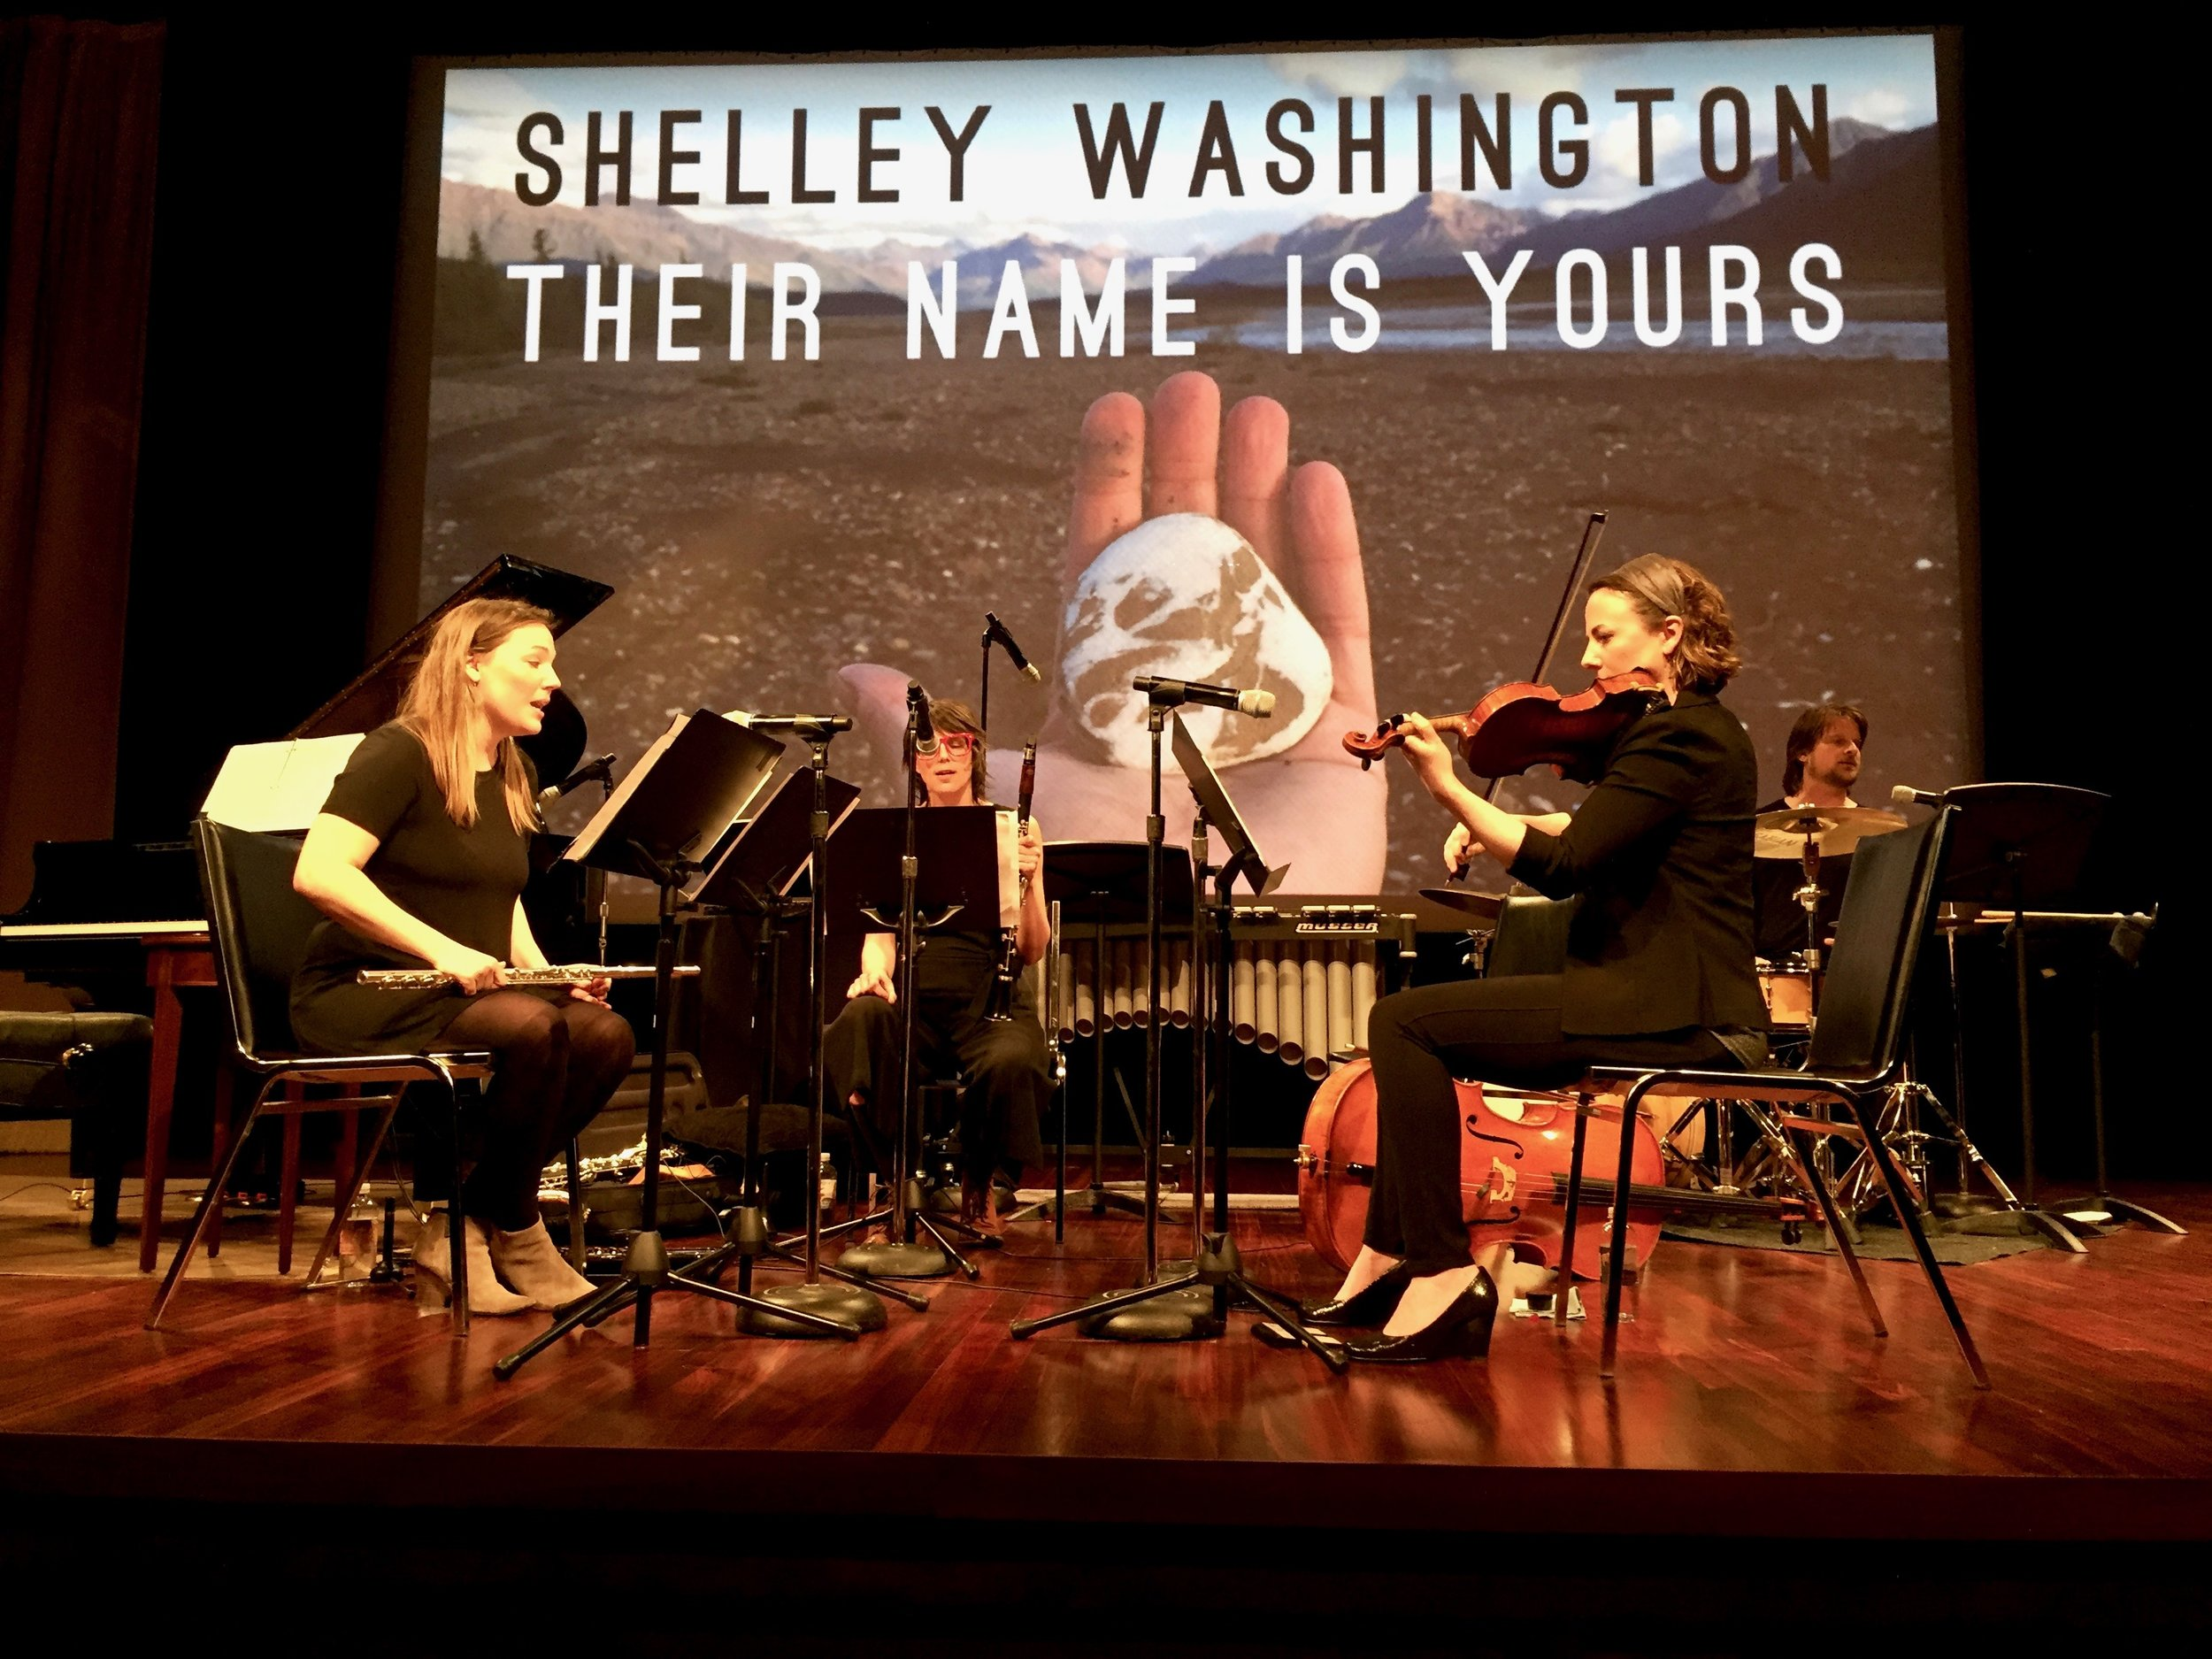 """Musicians and leaders of  Wild Shore New Music ,  Katie Cox  playing flute (left),  Andie Tanning Springer  on fiddle (right), with  Christa Van Alstine  on clarinet (center) and  Michael McCurdy  on drum set (far right) performing """"Their Name Is Yours"""" at the  U.S. National Archives  on March 30th, 2017."""